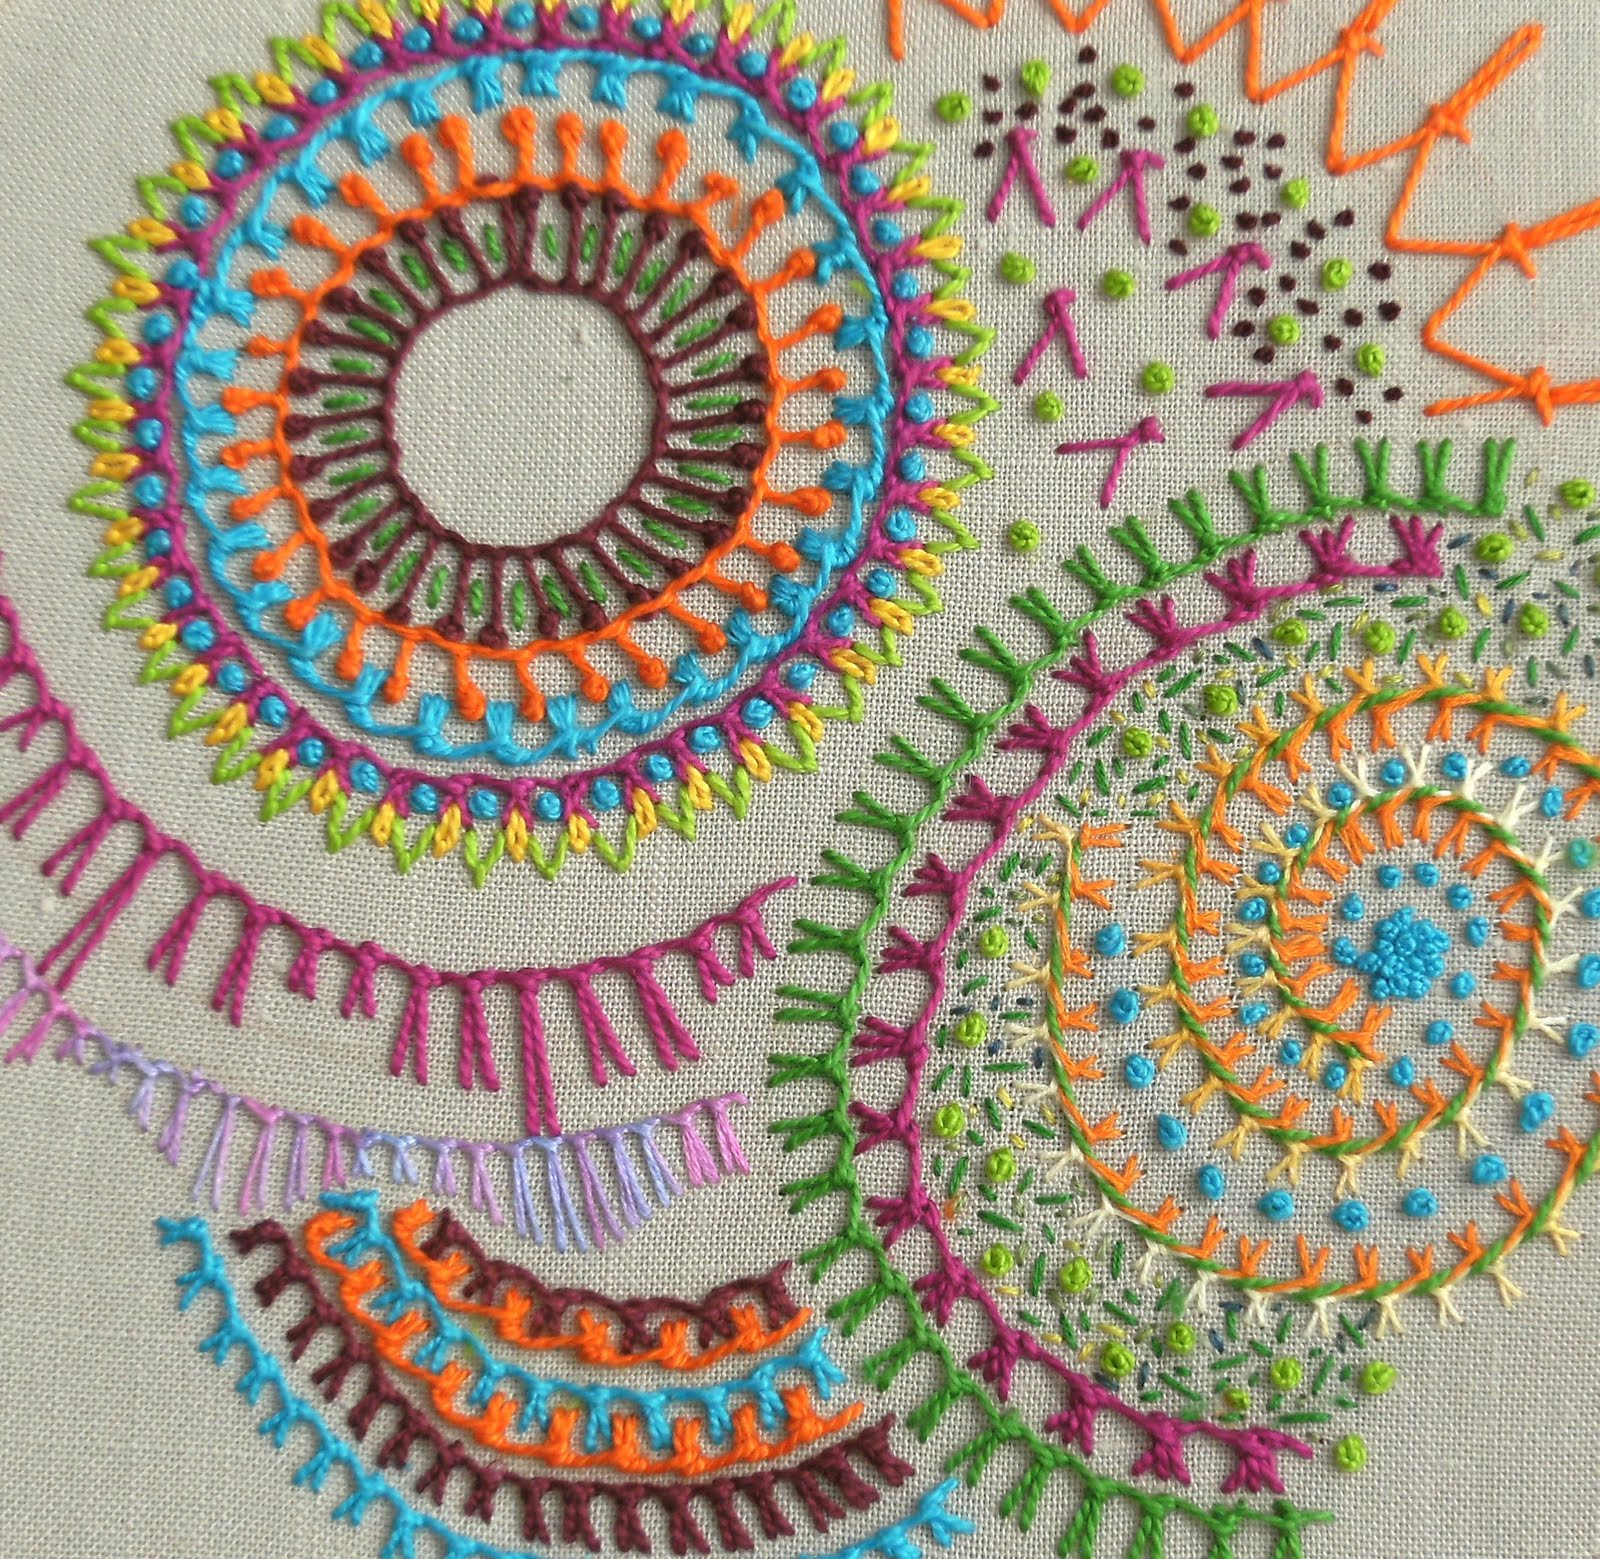 Experiments With Embroidery